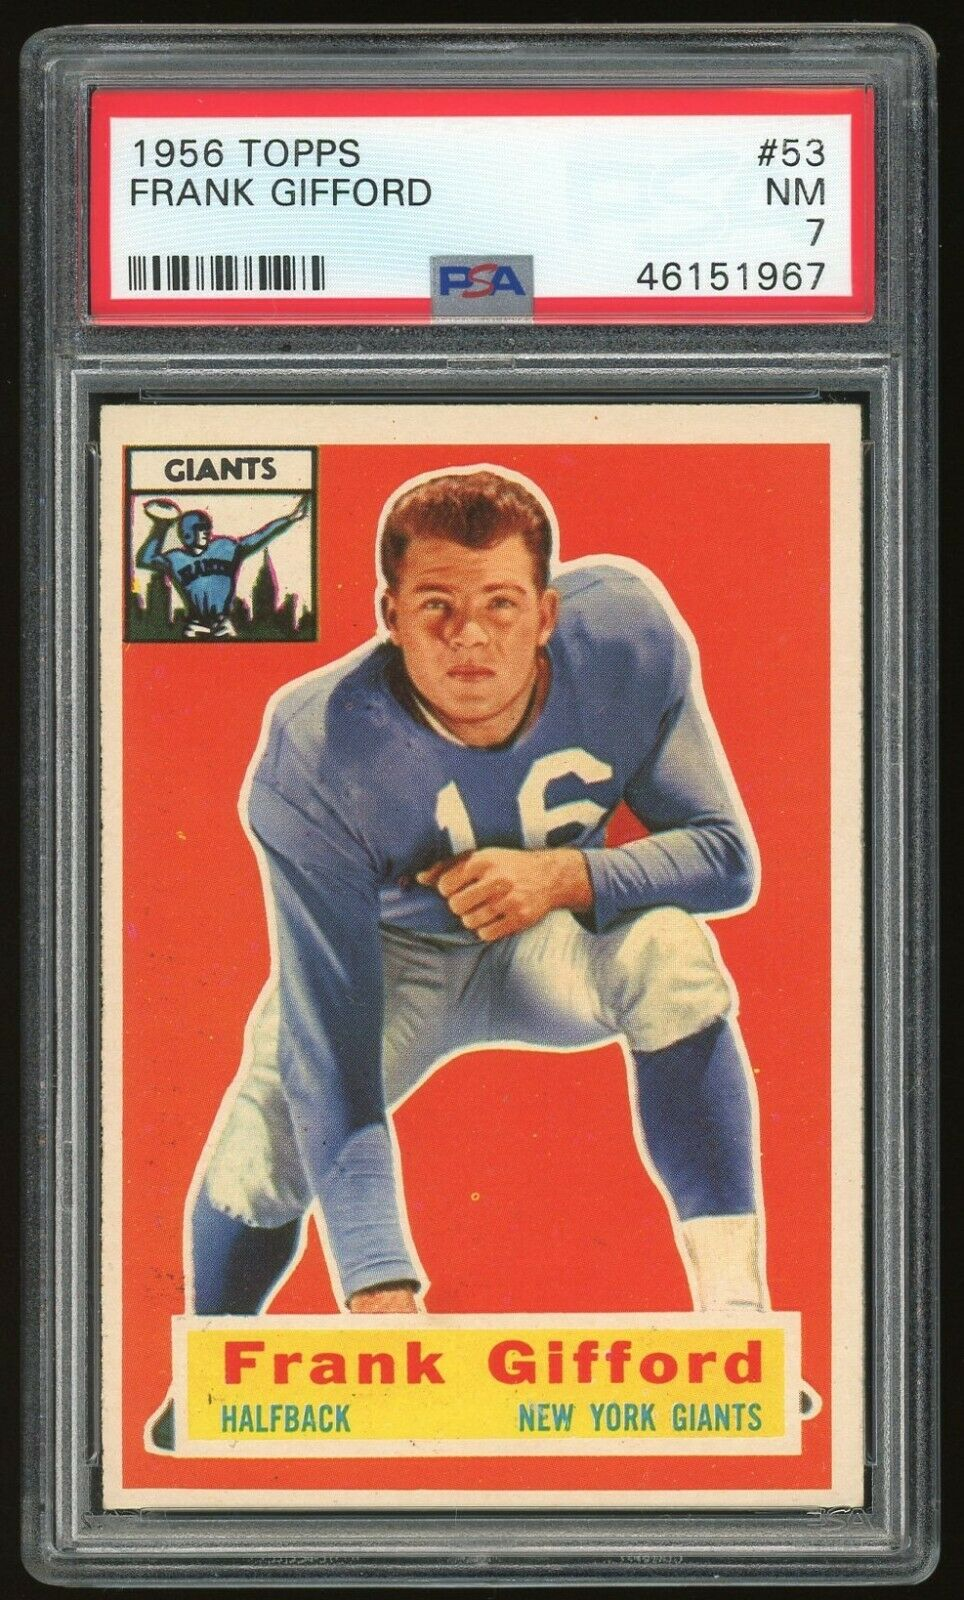 1956 TOPPS FRANK GIFFORD ROOKIE CARD PSA 7